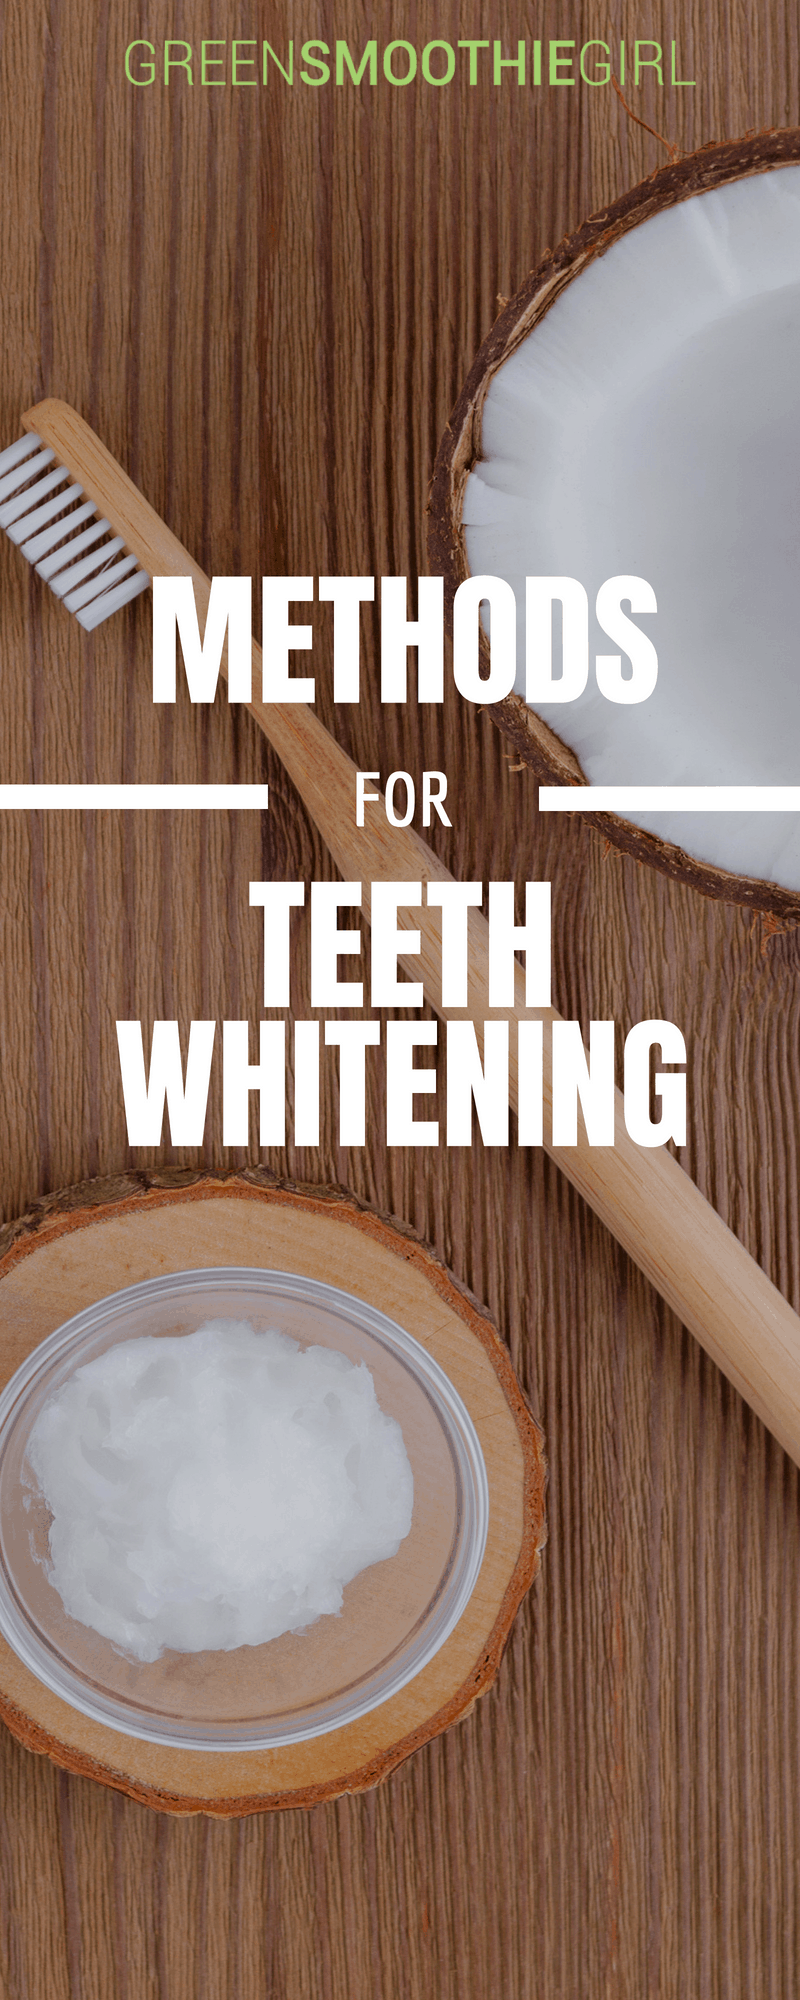 Methods for Natural Teeth Whitening | Green Smoothie Girl